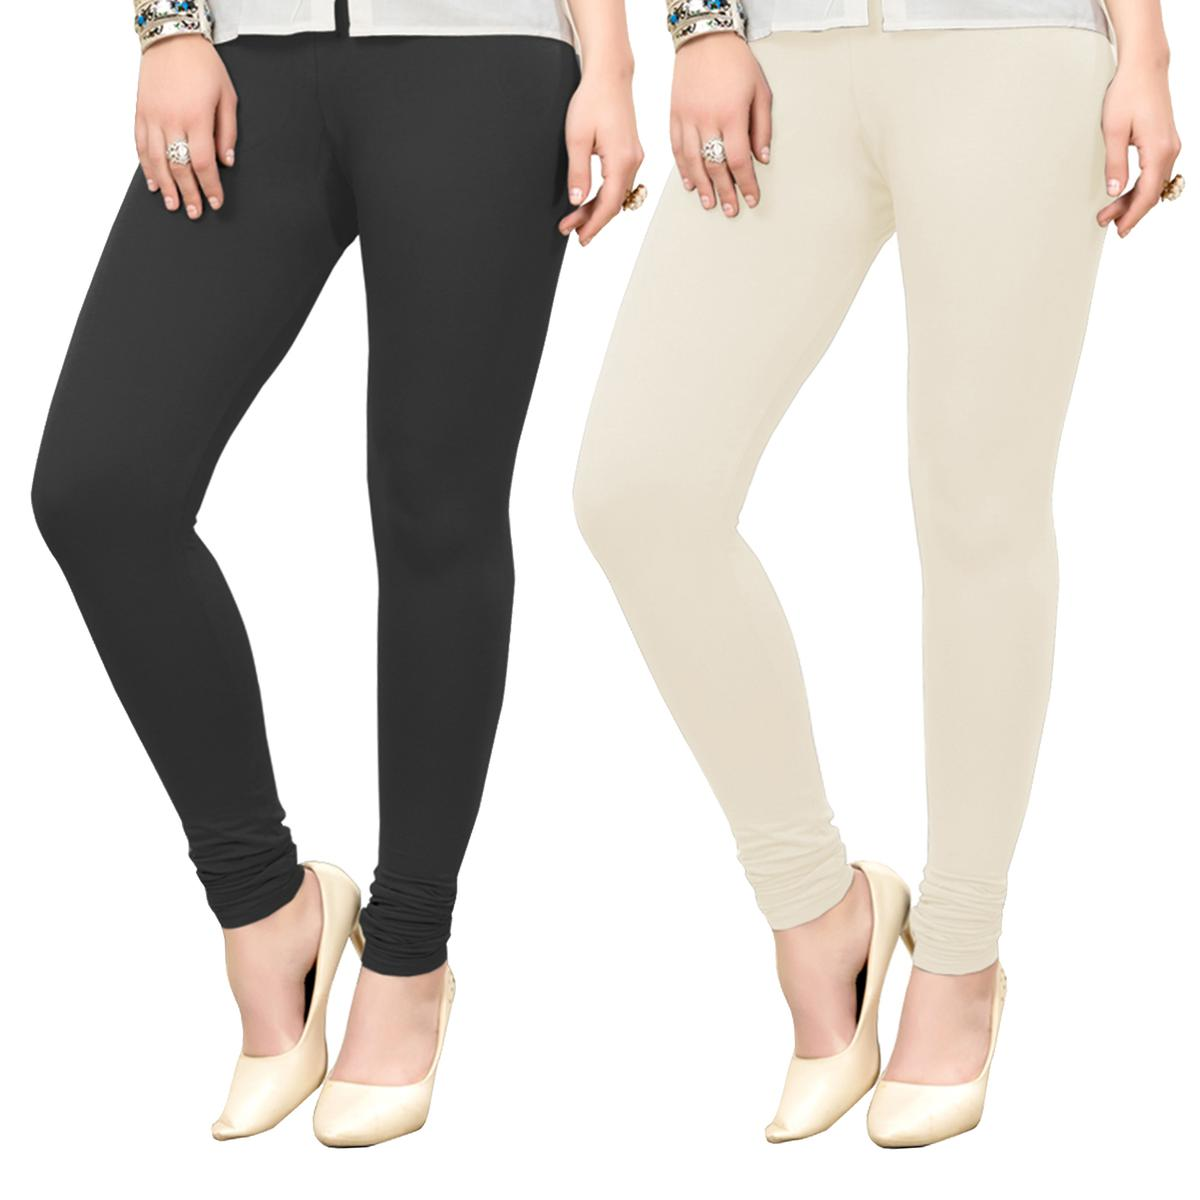 Amazing Casual Wear Ankle Length Cotton Leggings - Pack of 2